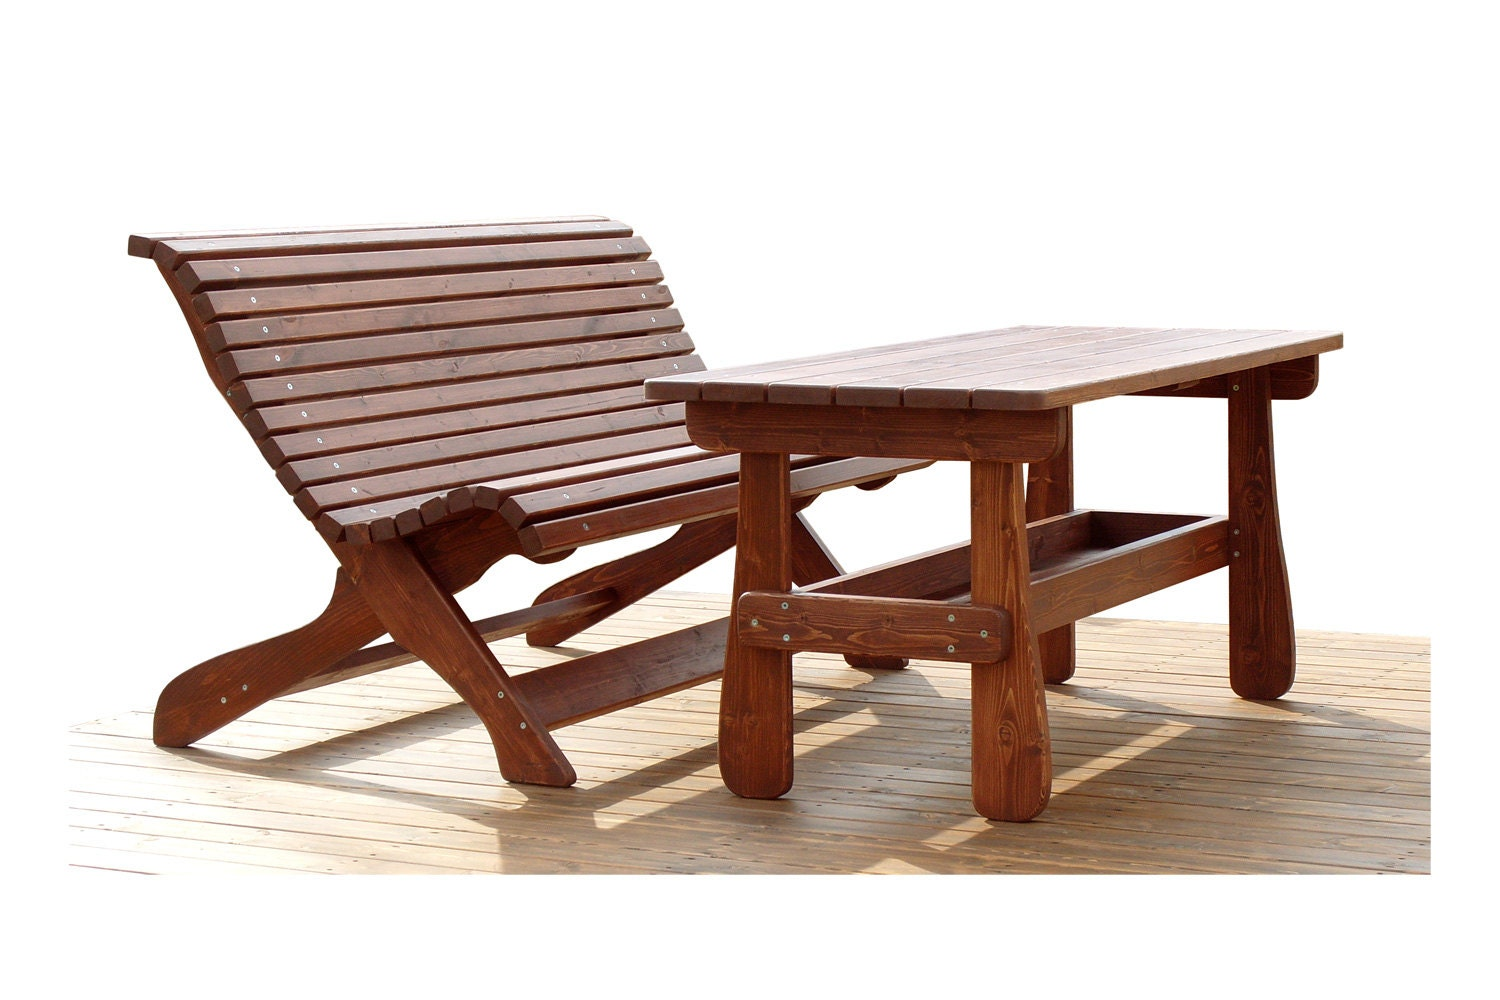 Items Similar To How To Make A Quality WOODEN BENCH 2   TABLE For 4 Or . Full resolution‎  pic, nominally Width 1500 Height 1000 pixels, pic with #451910.